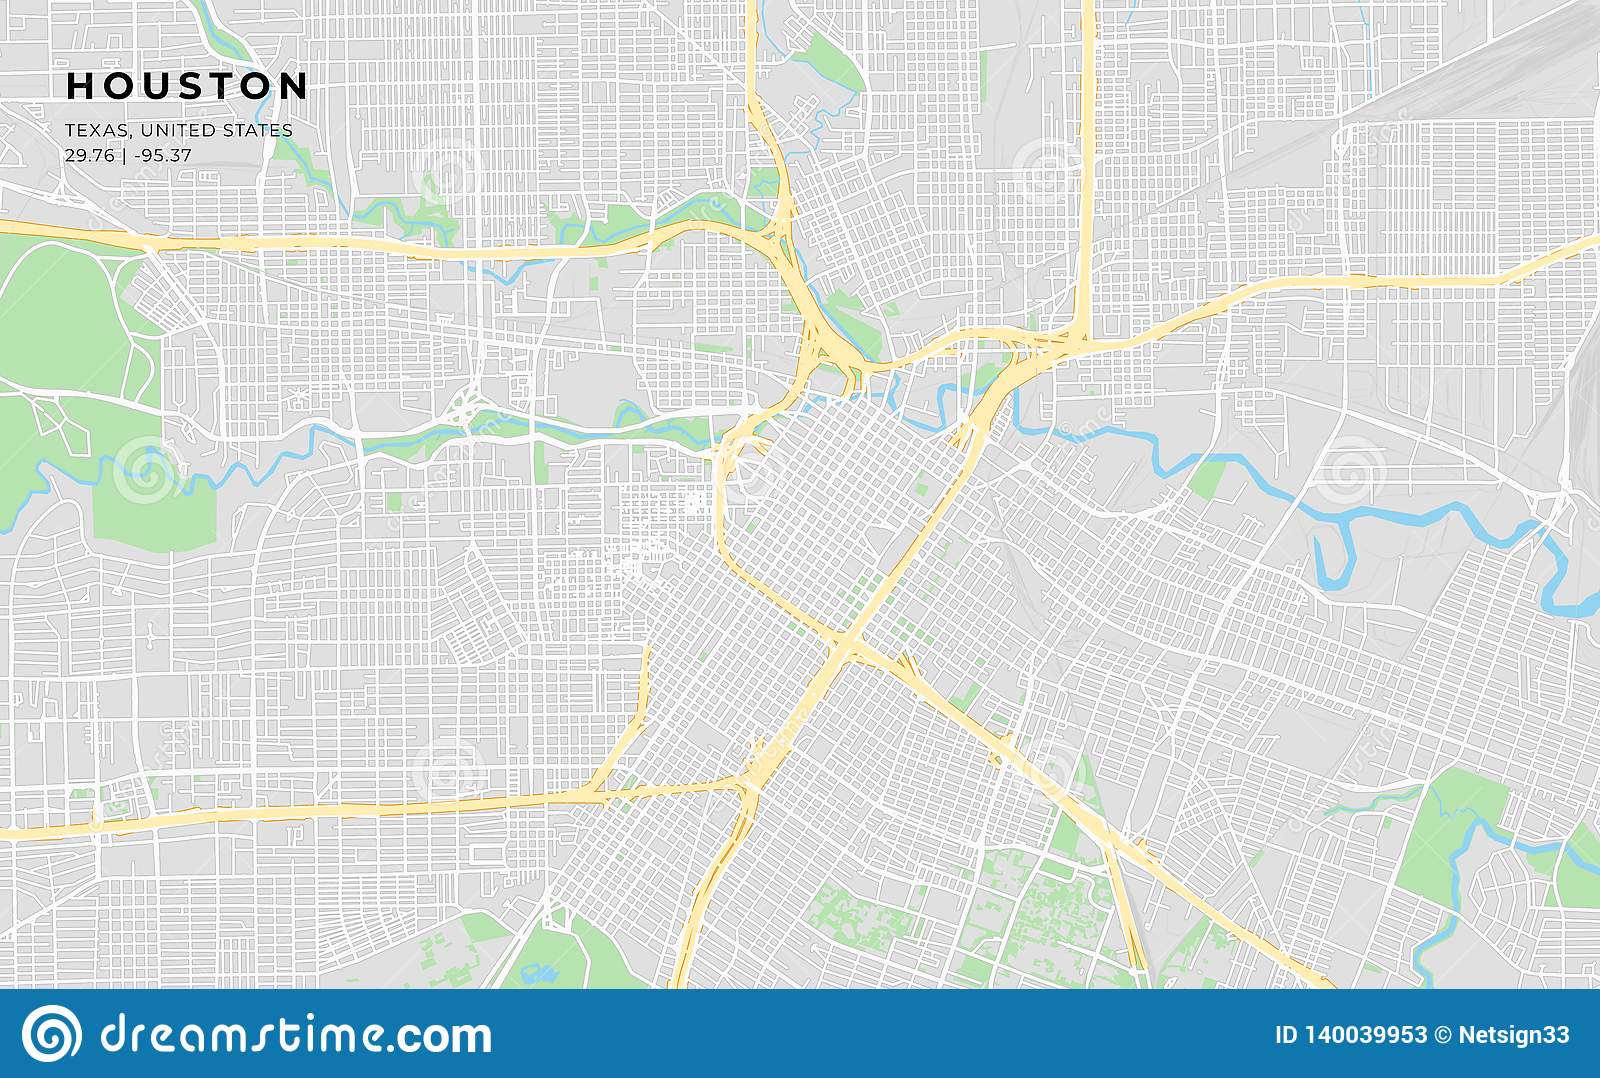 photograph about Houston Map Printable titled Printable Road Map Of Houston, Texas Inventory Vector